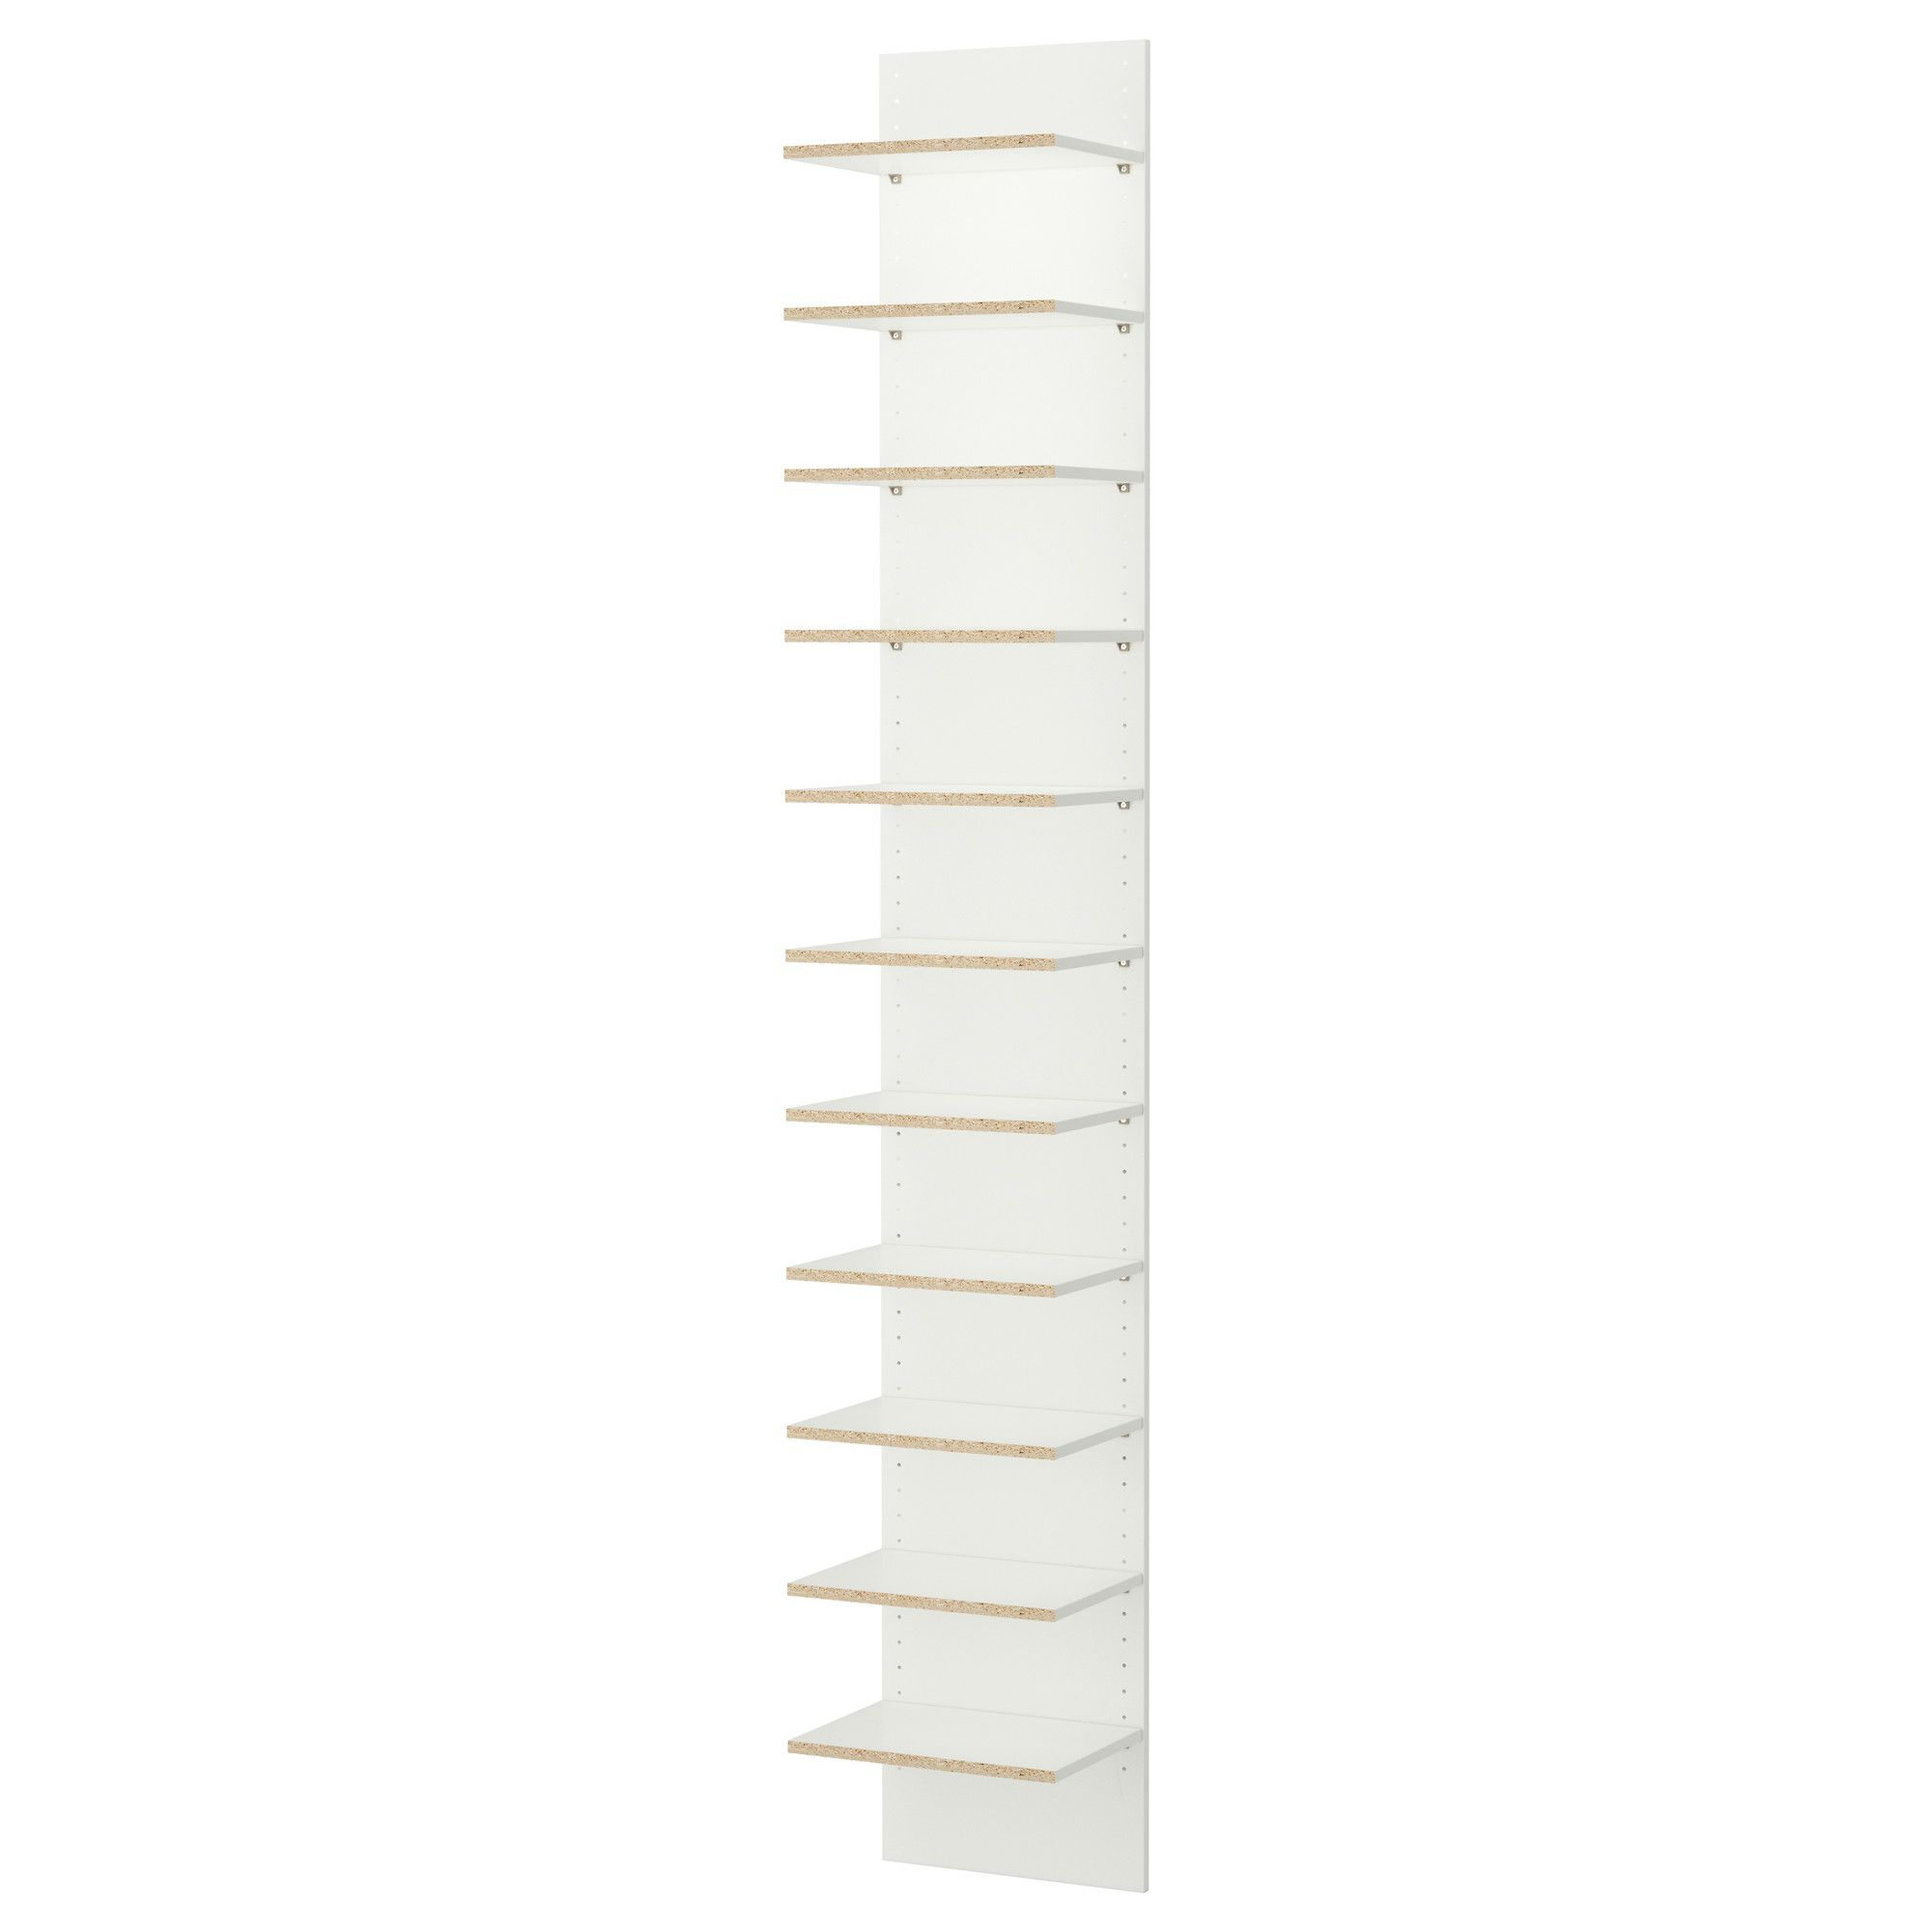 Komplement Shelf Insert Ikea 25x 35x 236 Price 60 Holy